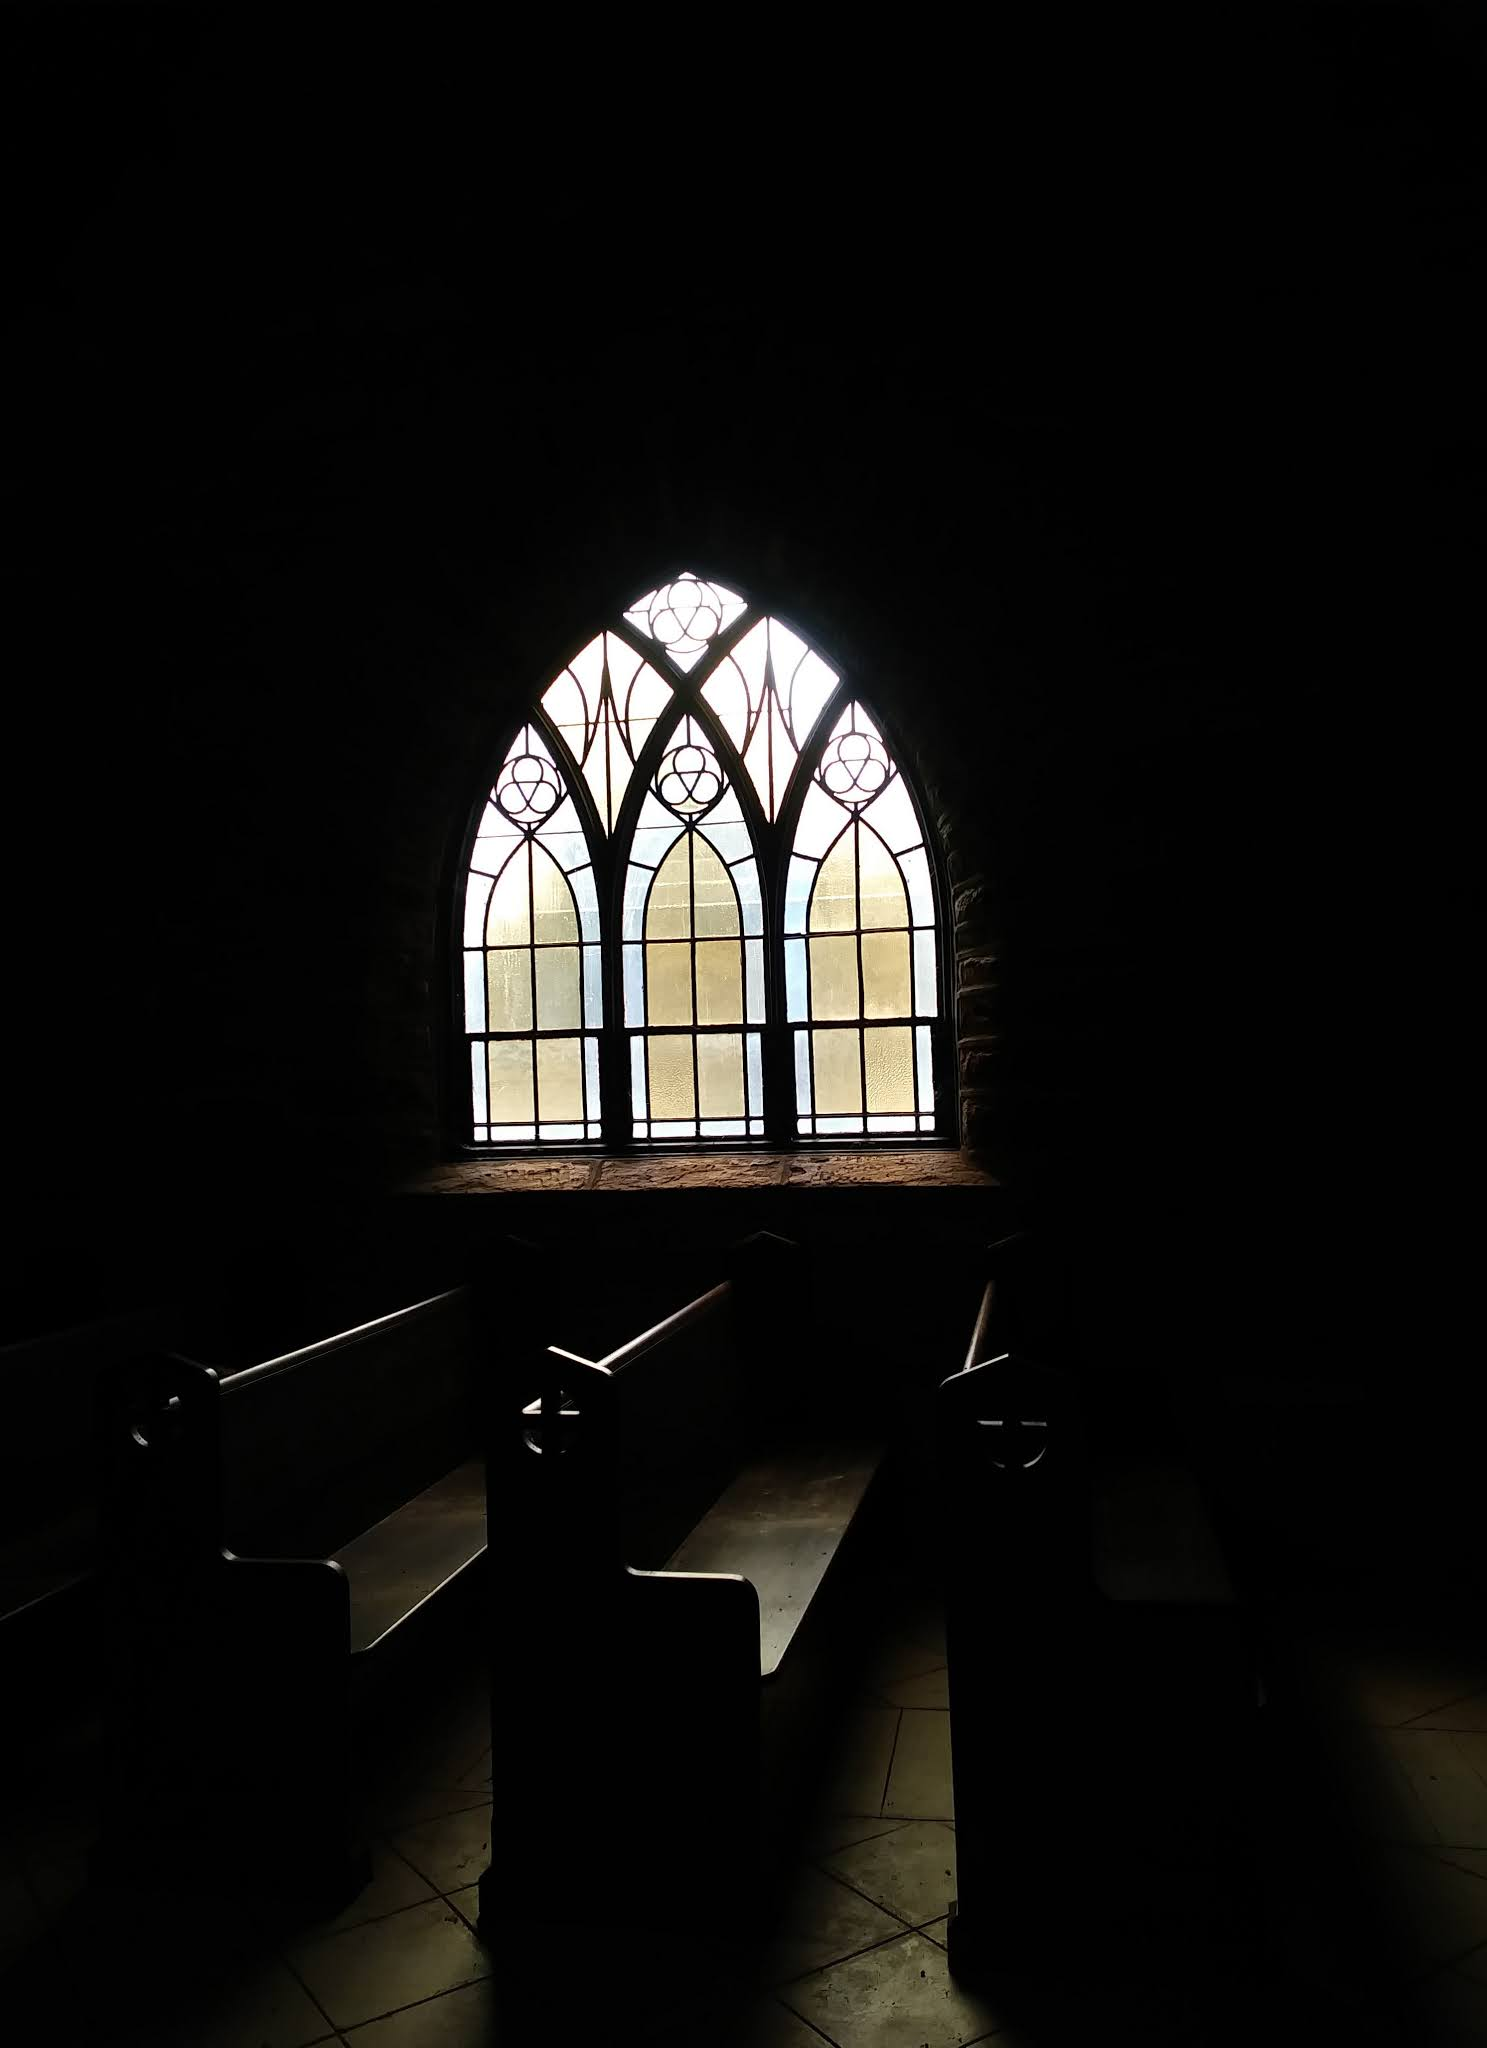 I'm not religious but going to church changed my life